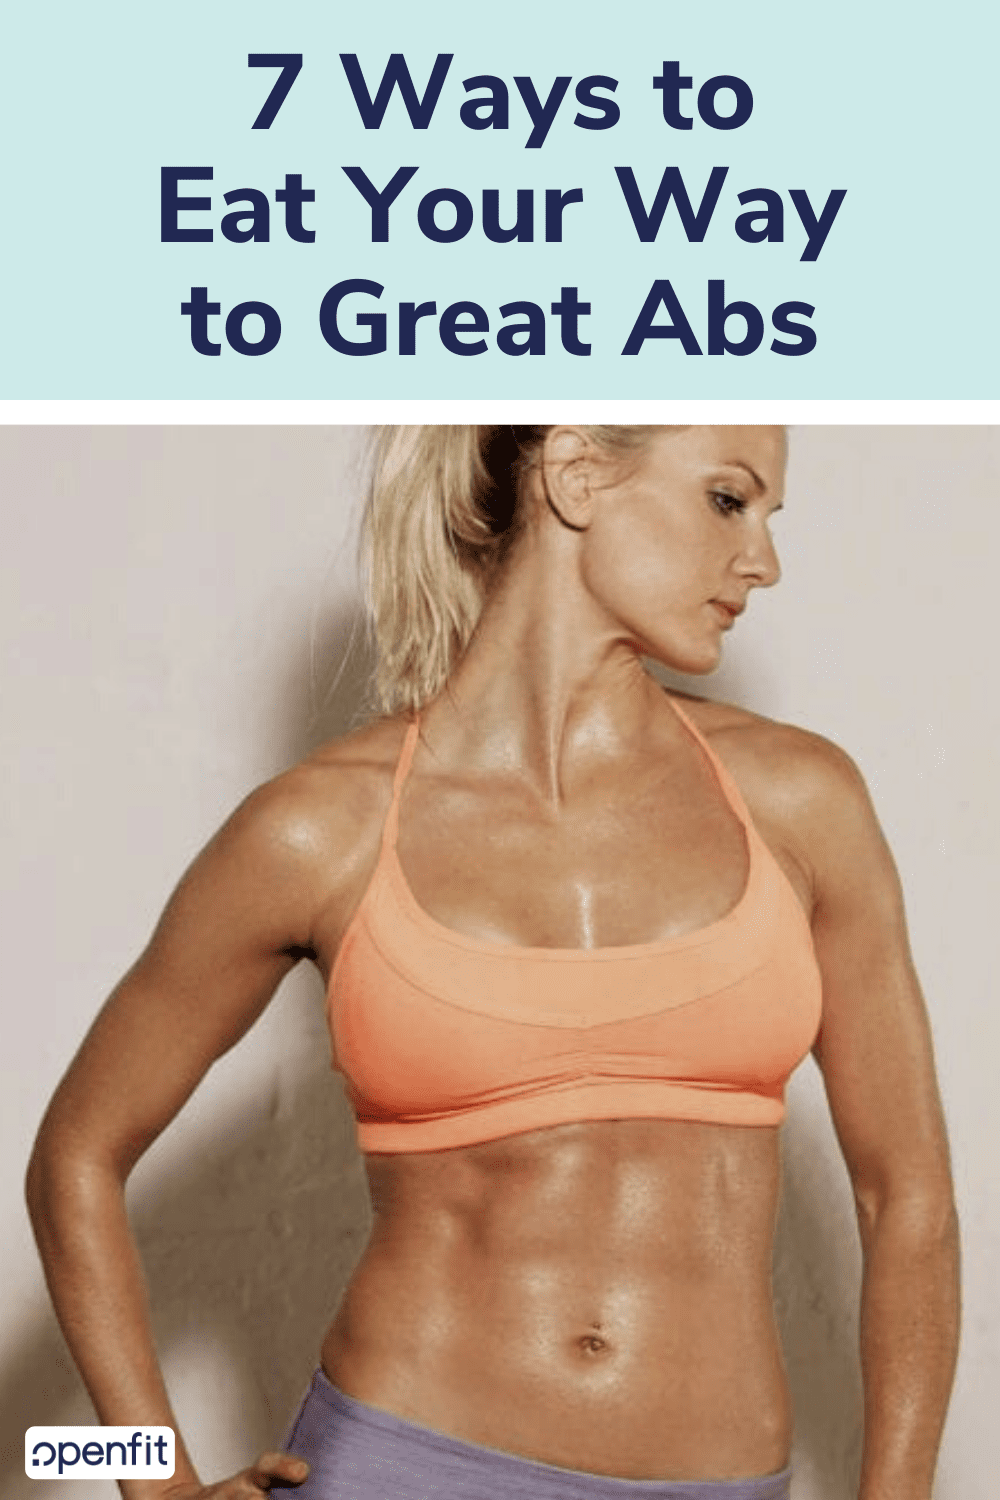 eat your way to great abs pin image